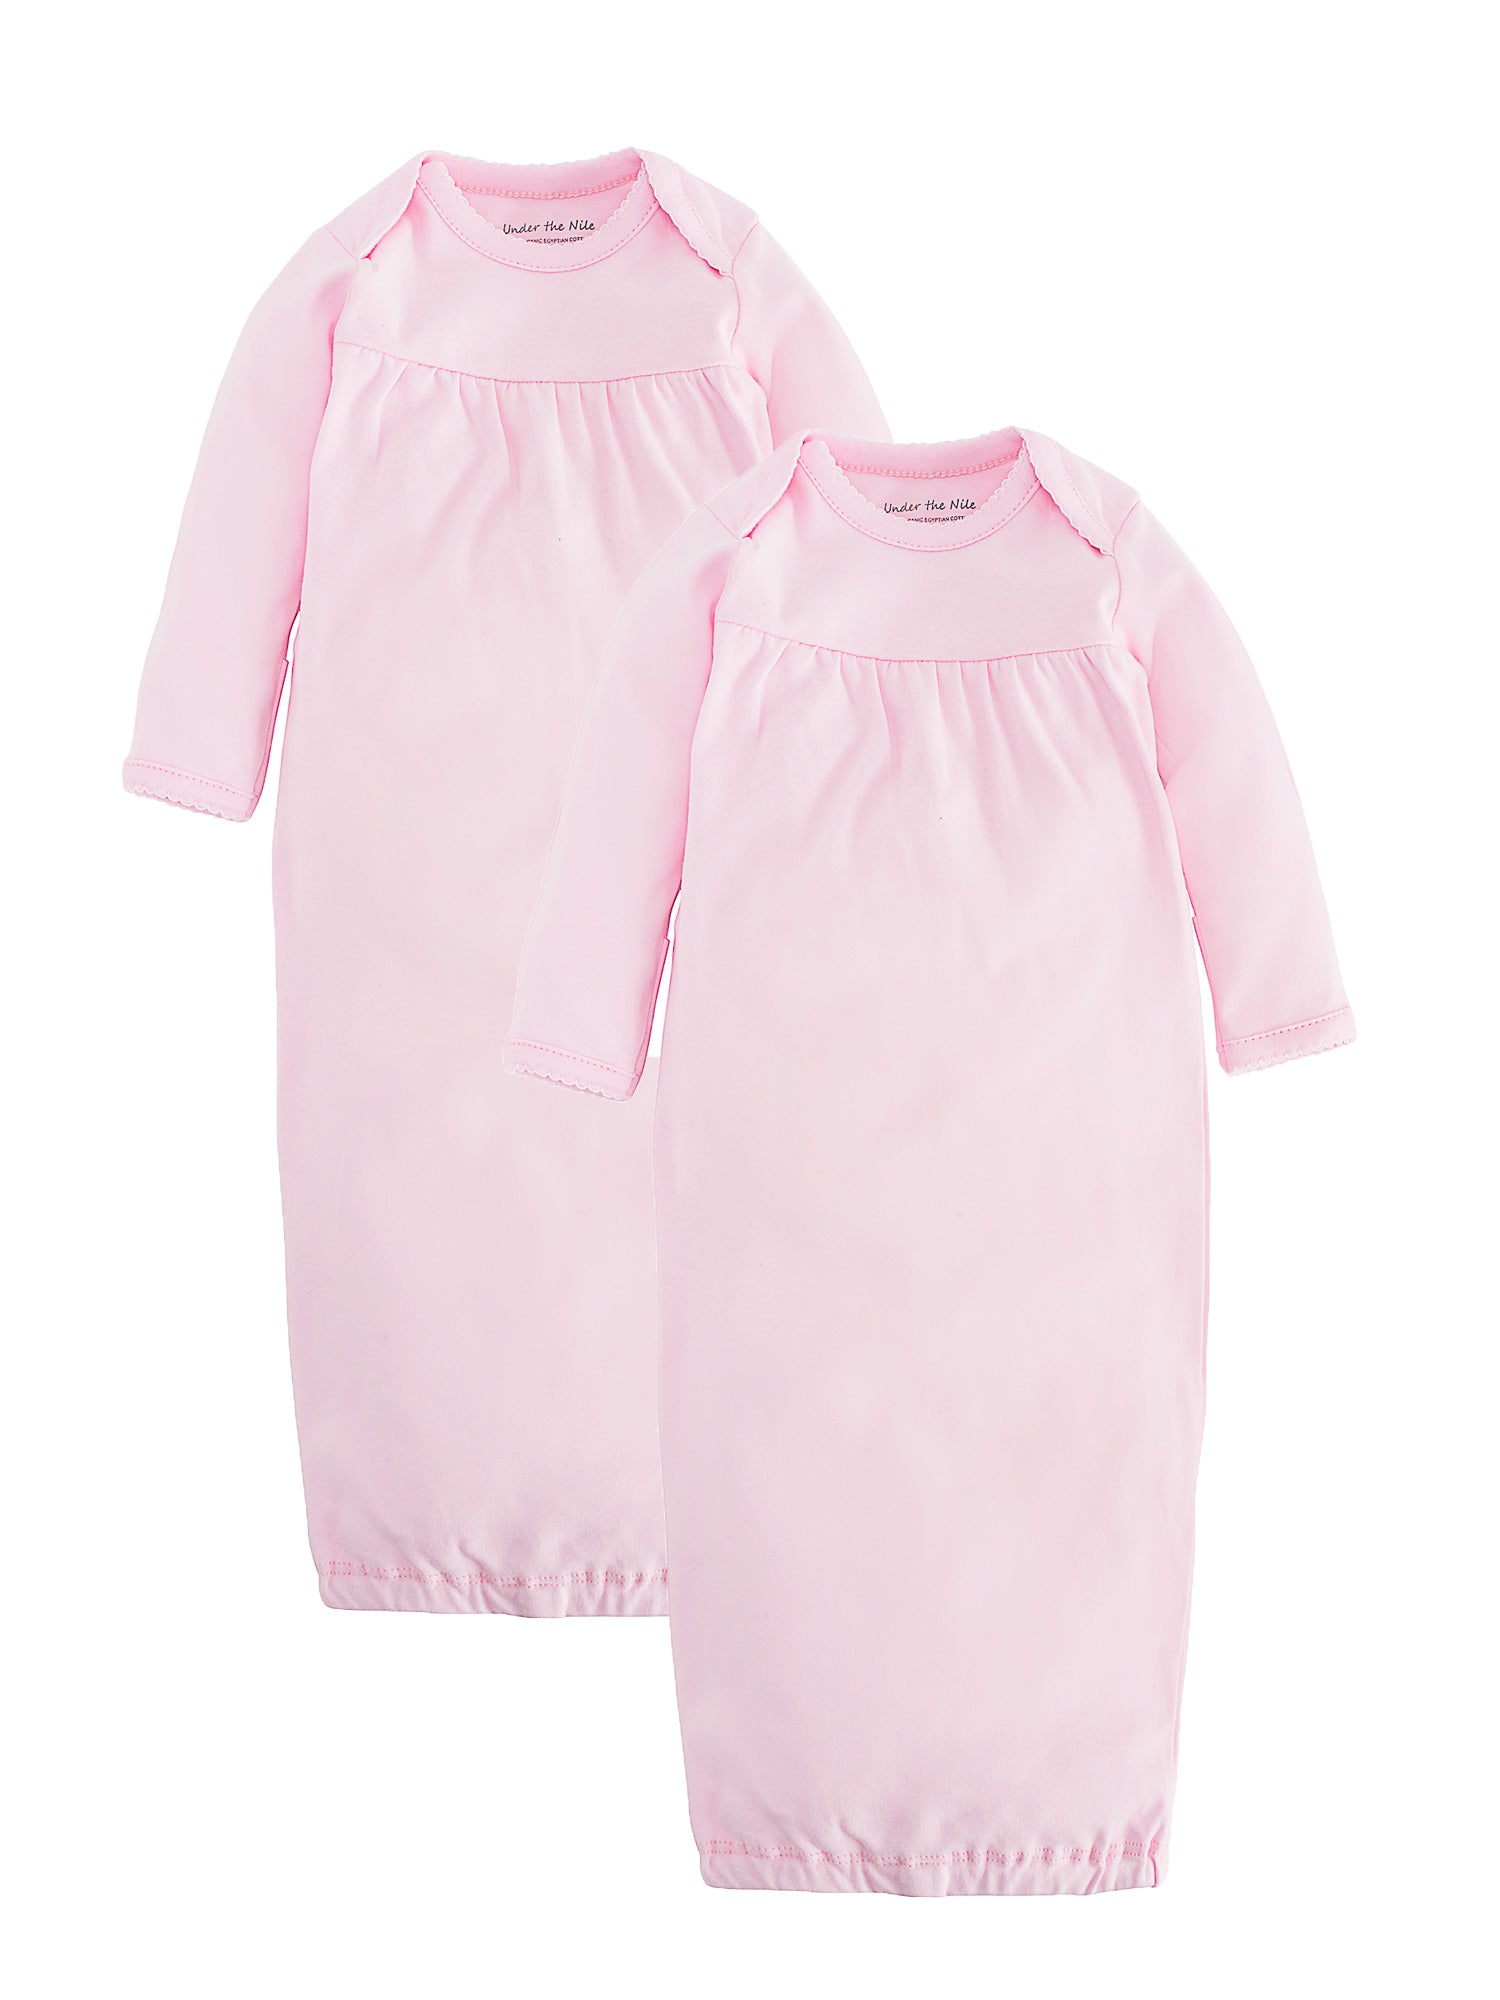 Baby Gown - Pink Value Pack